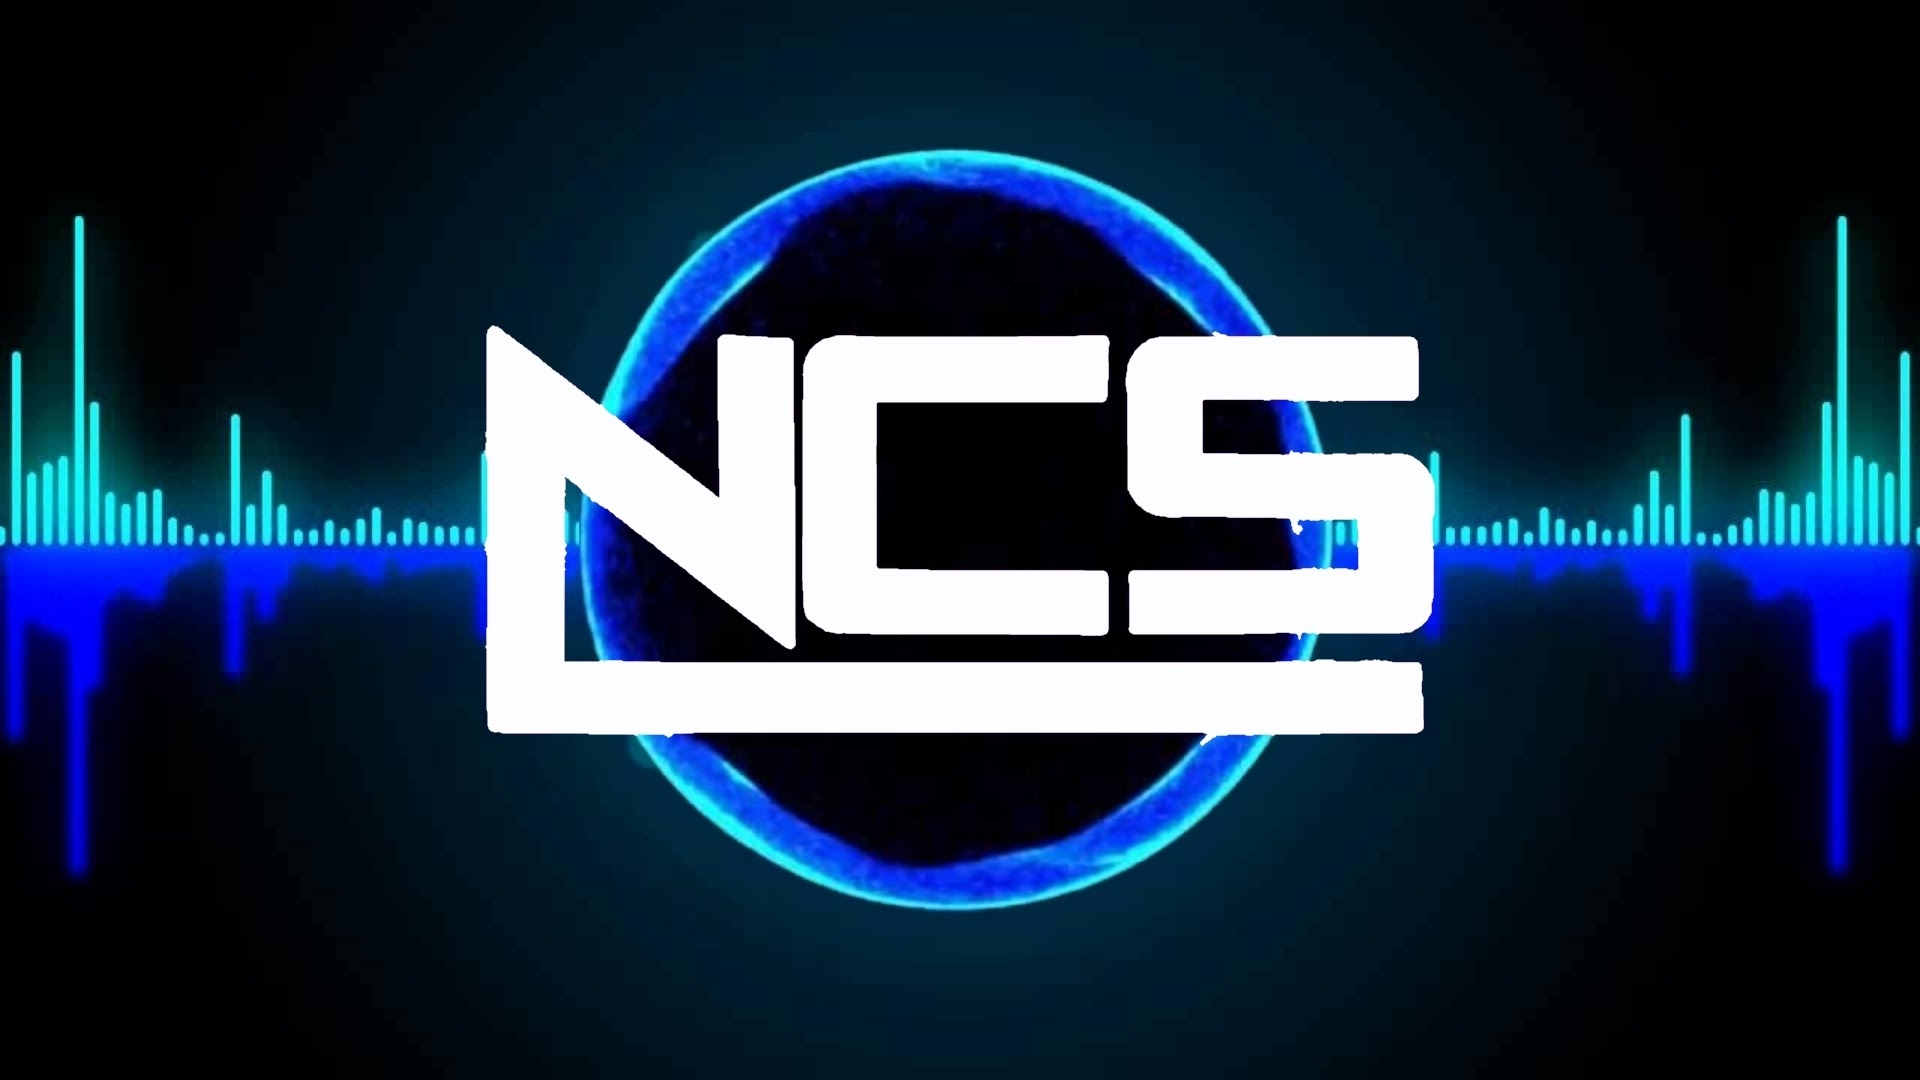 Free-cool-background-music-for-games-Download-Best-Ncs-Gaming-Video-Background-Music-No-Copyrigh-wallpaper-wp3405817